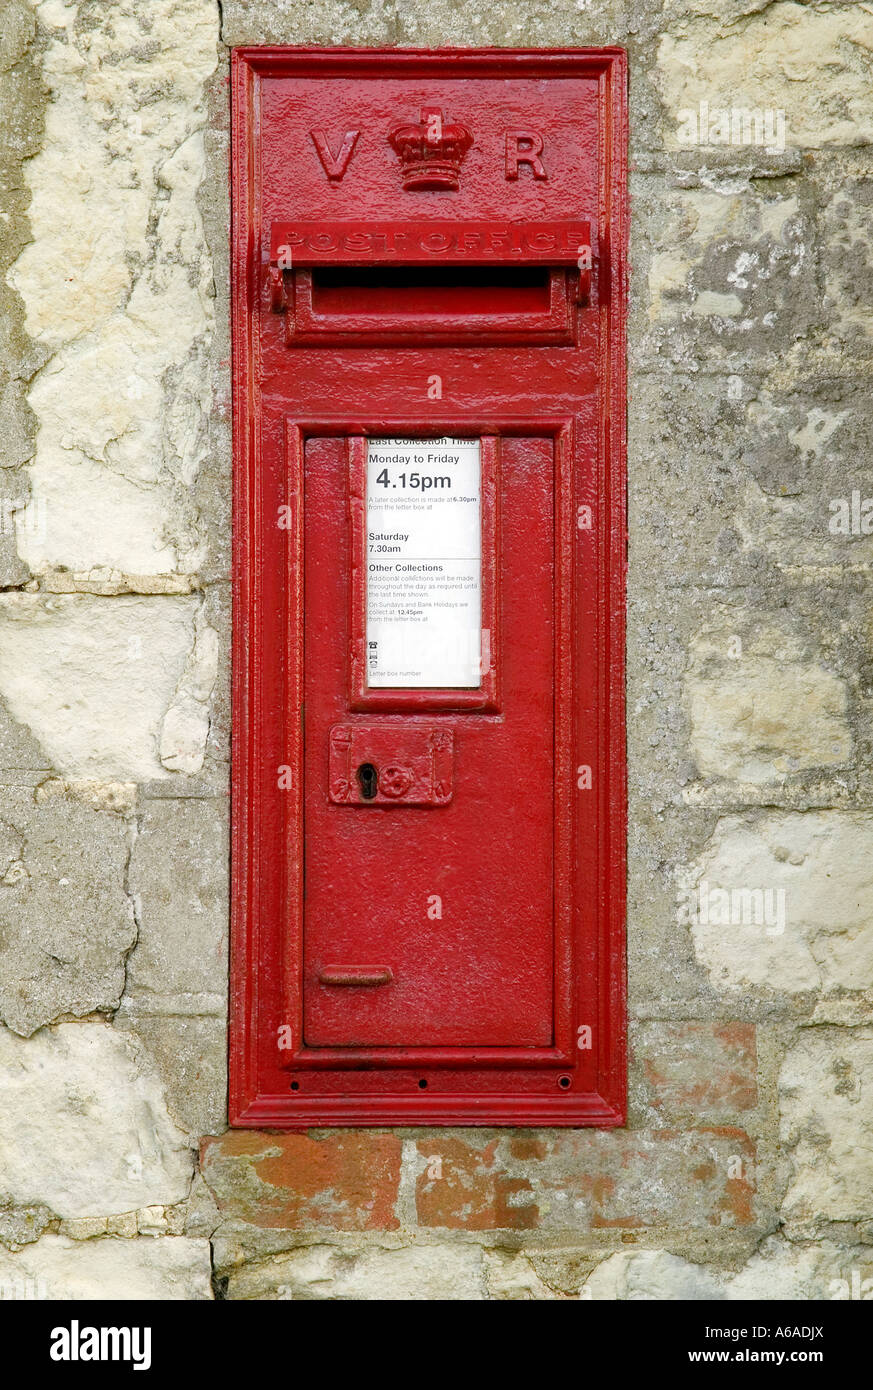 Rare English Victorian Mail Box still being used in a small village Blank spaces for your own text Stock Photo